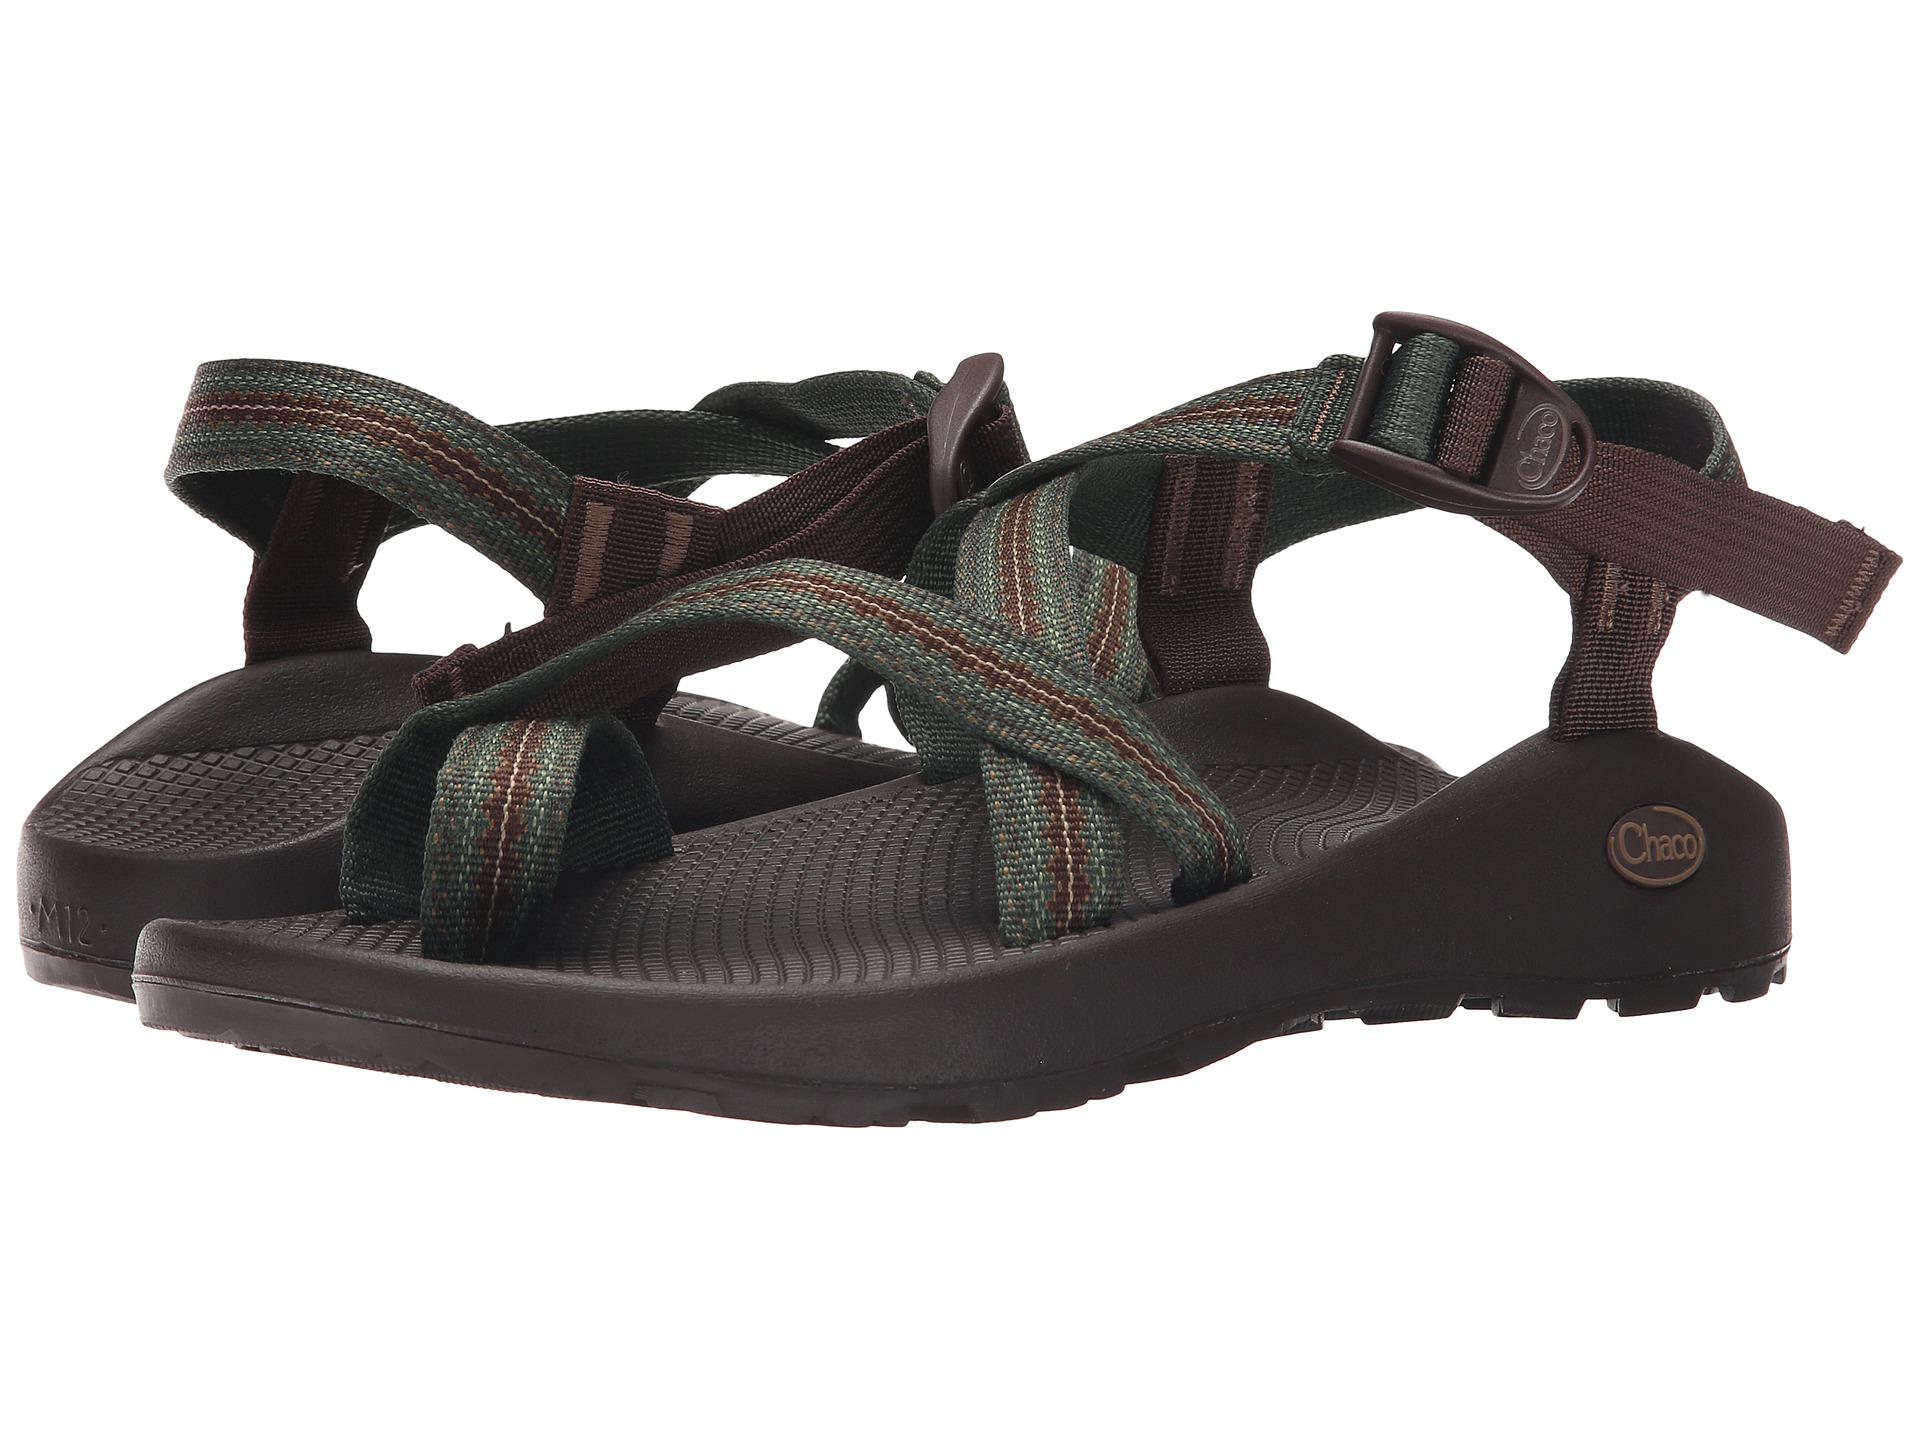 726fbbfbbabc Chaco Z/2® Classic in Green for Men - Lyst